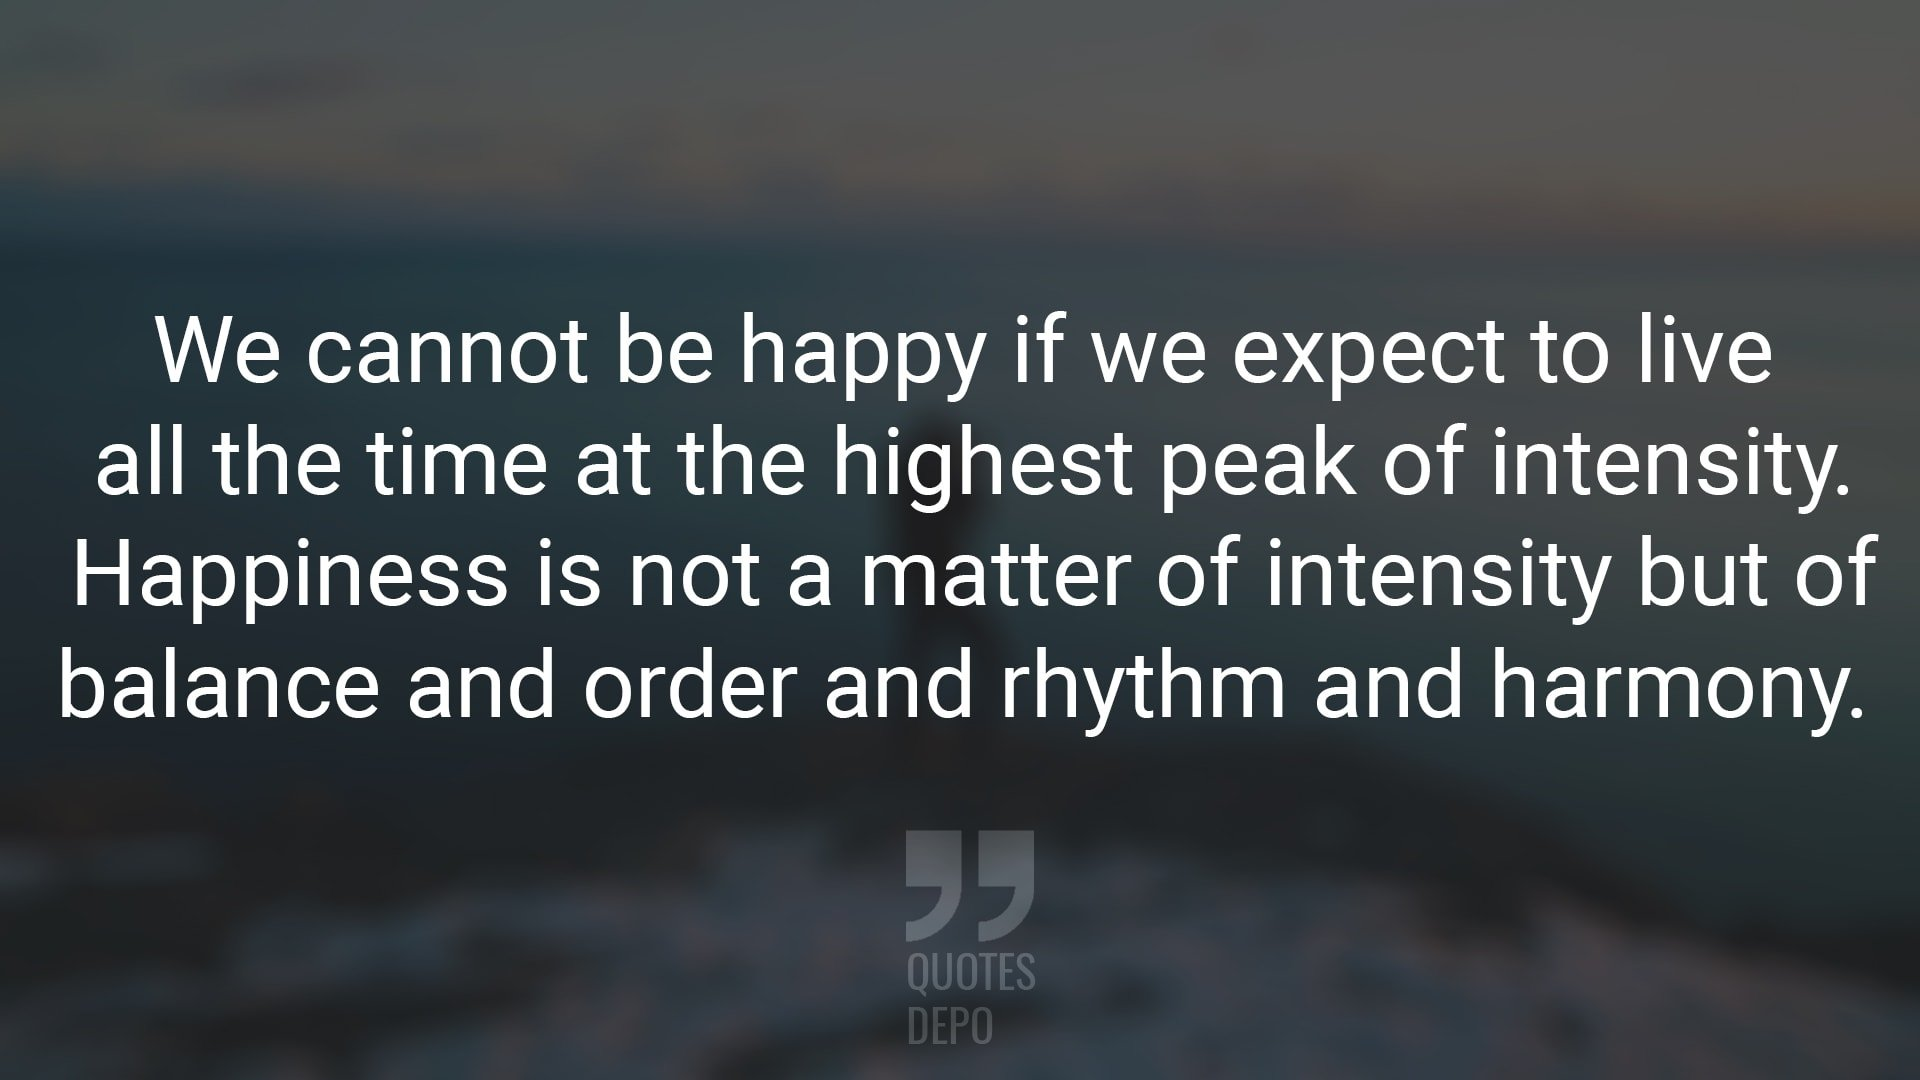 We Cannot be Happy if We Expect